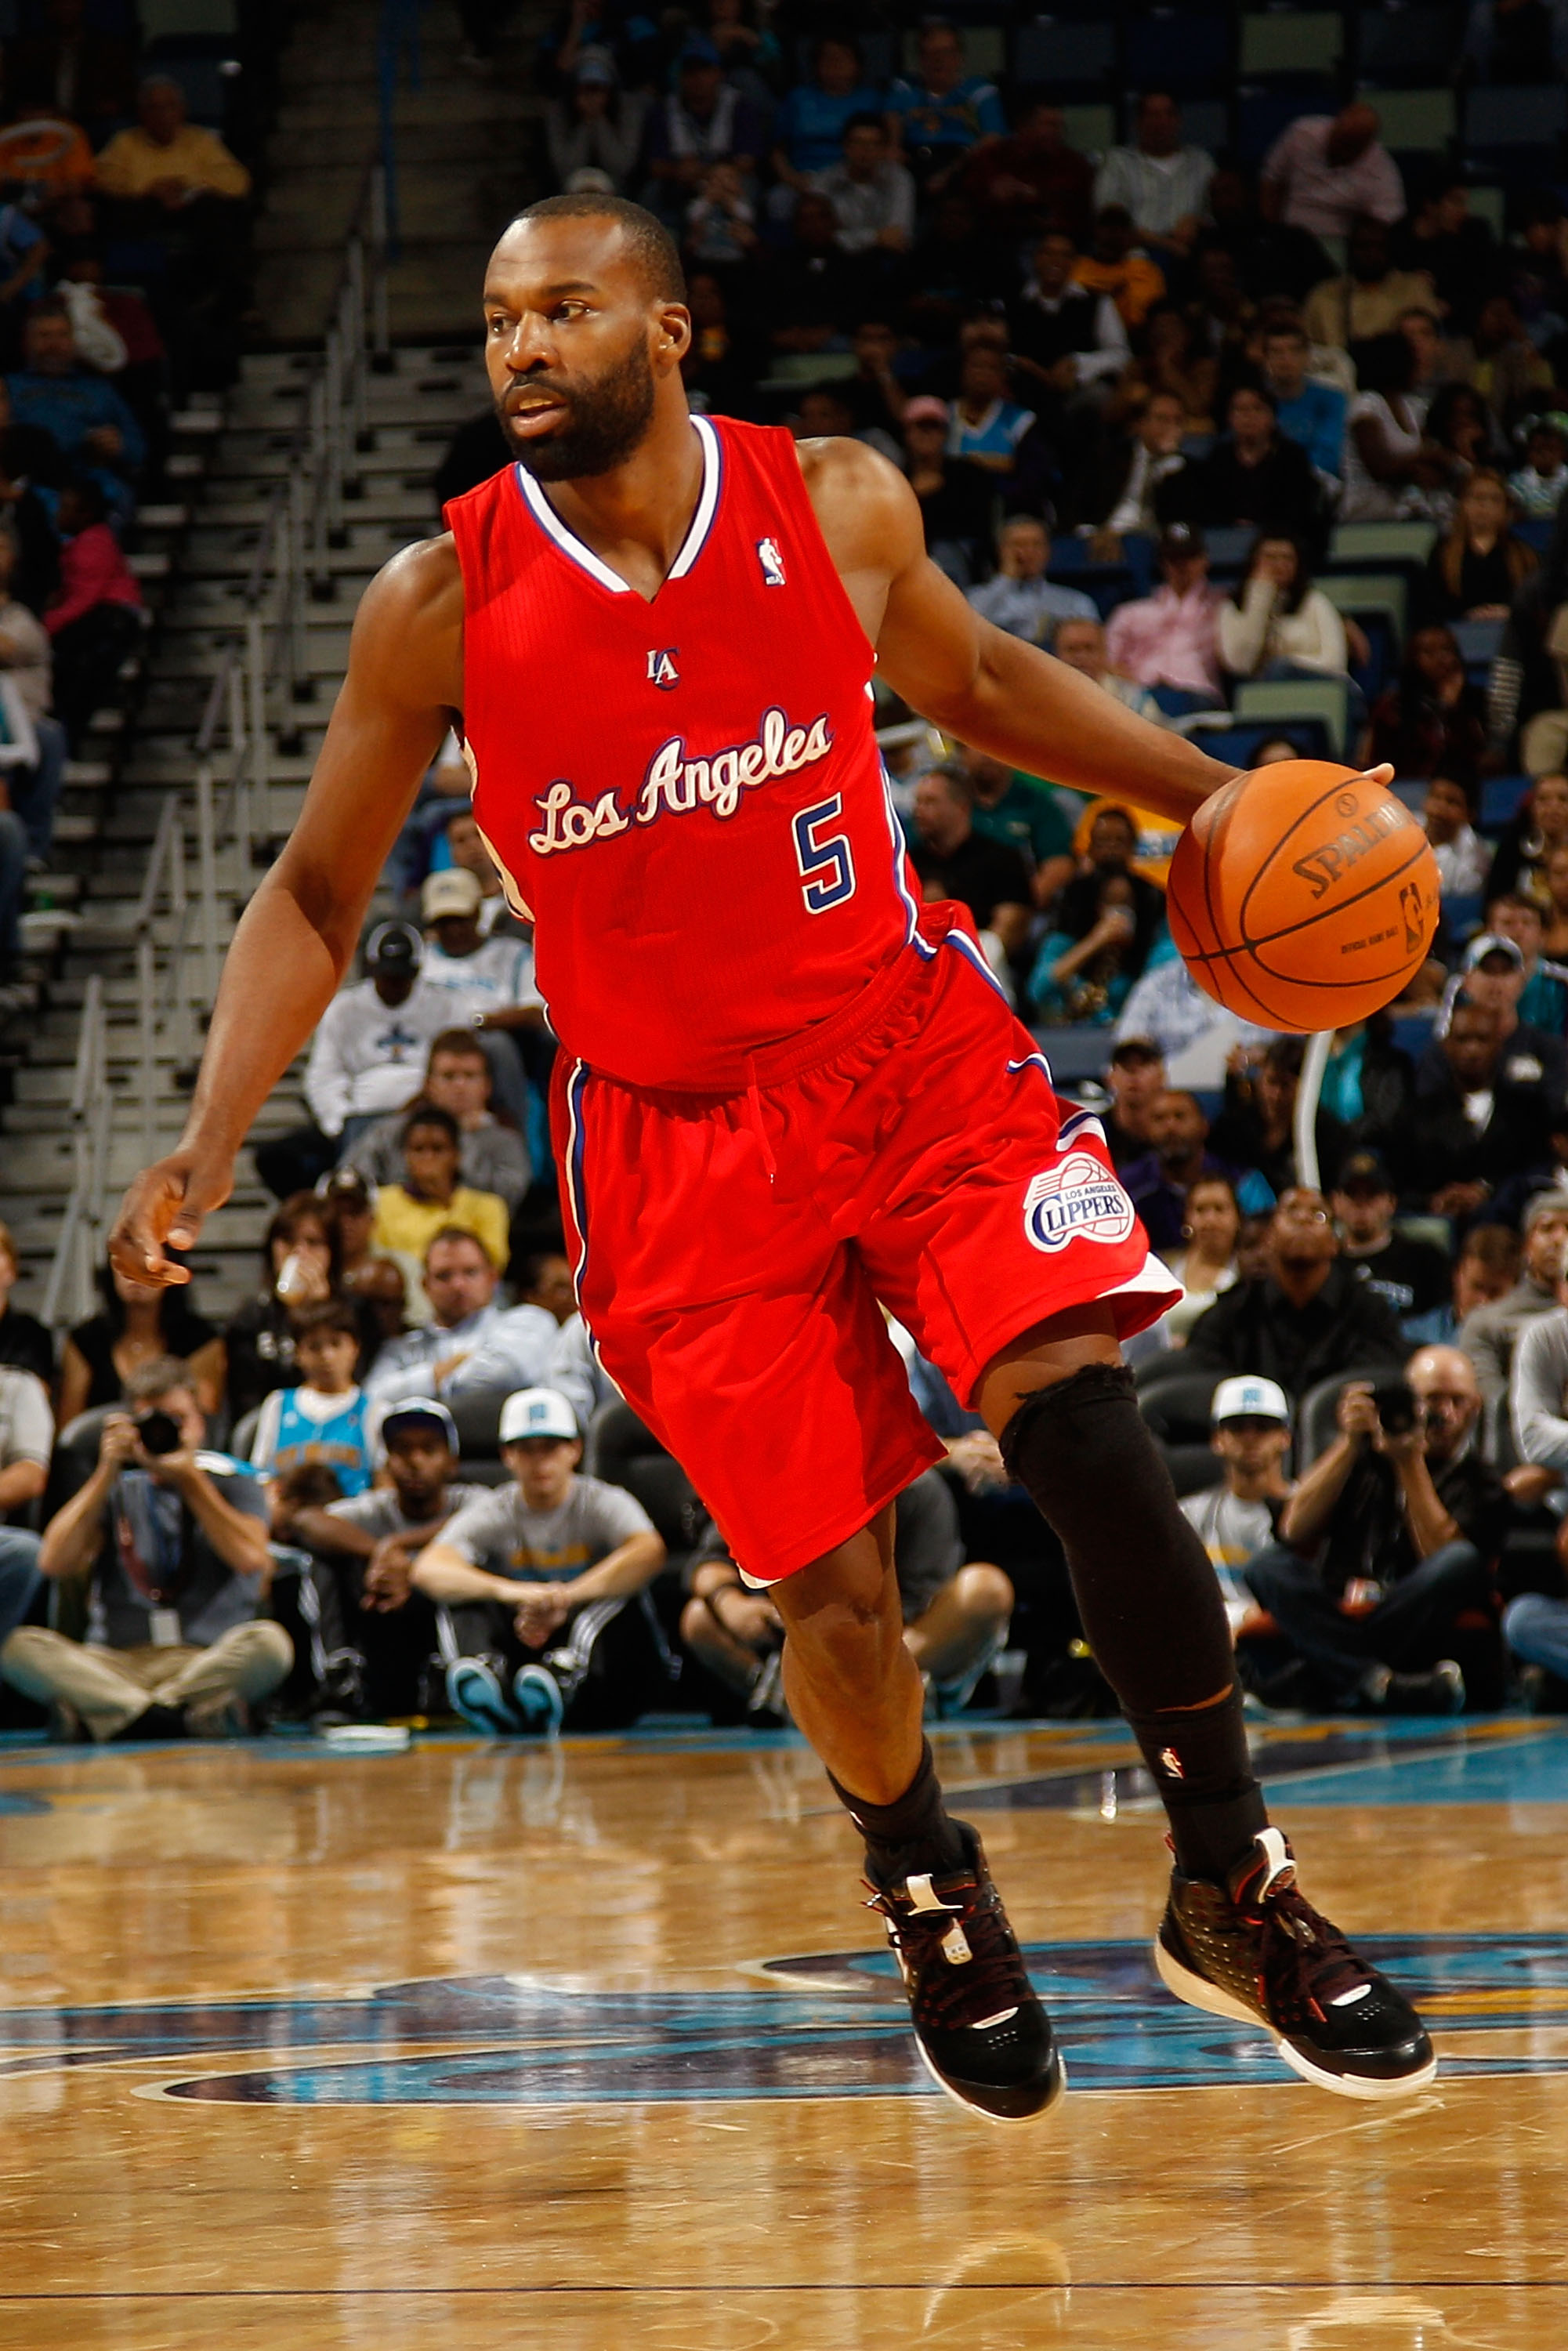 NEW ORLEANS - NOVEMBER 09:  Baron Davis #5 of the Los Angeles Clippers drives the ball down the court during the game against the New Orleans Hornets at the New Orleans Arena on November 9, 2010 in New Orleans, Louisiana. The Hornets defeated the Clippers